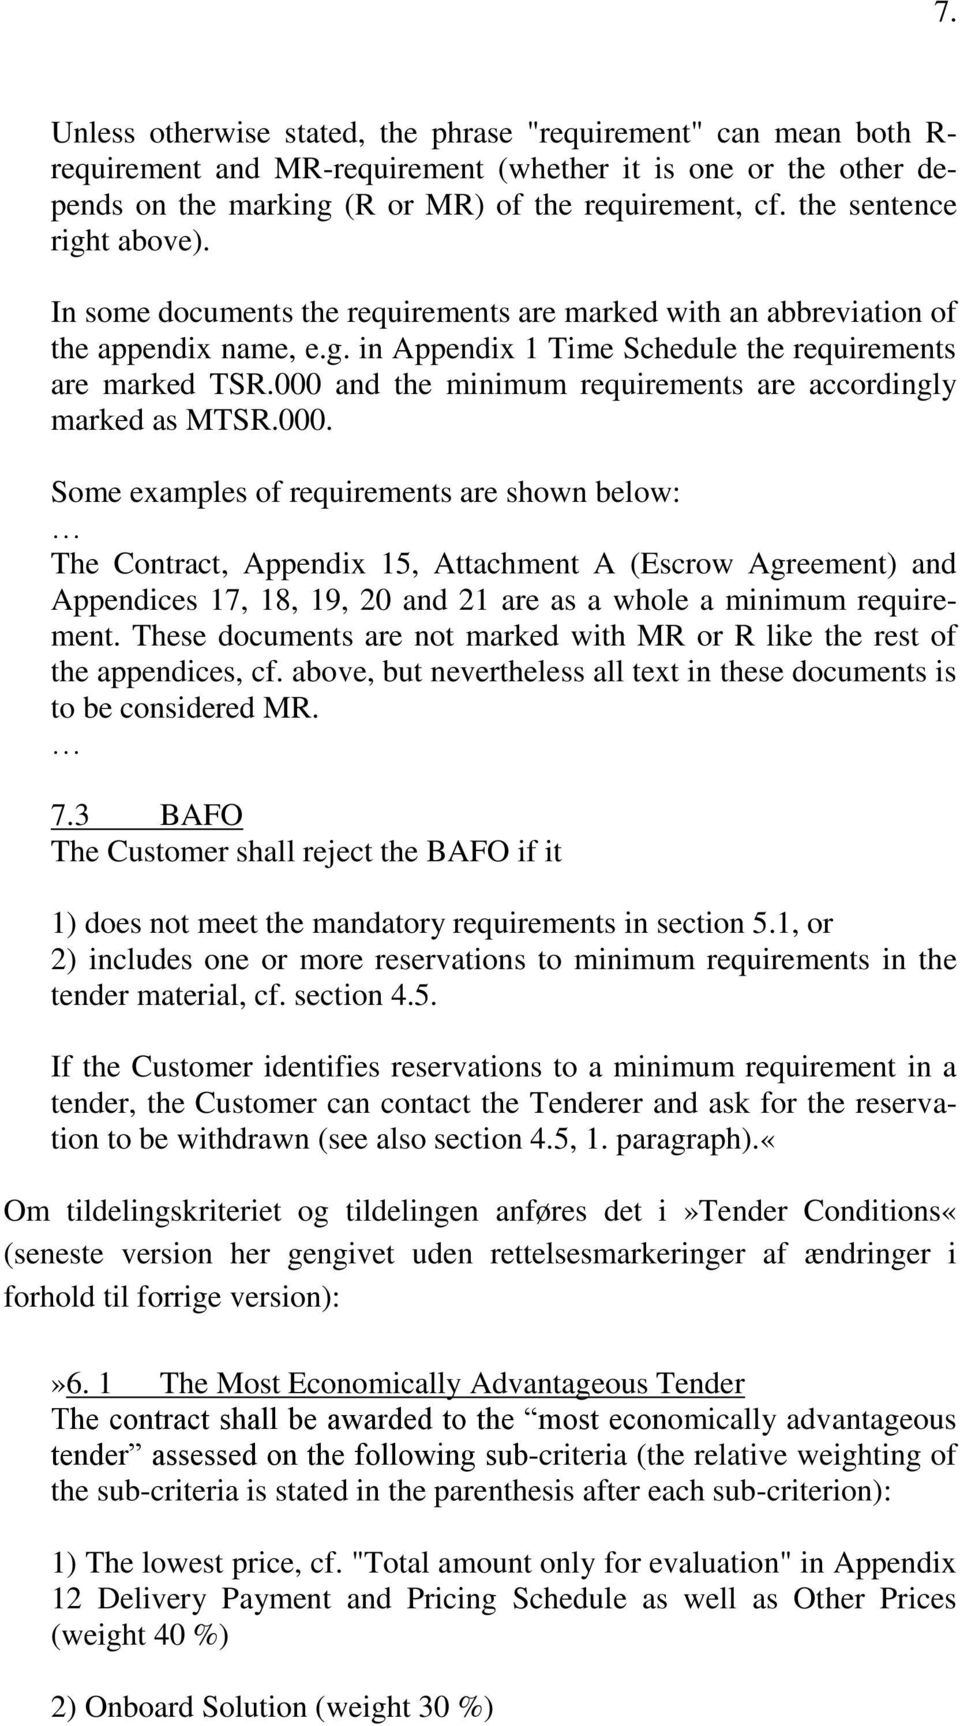 000 and the minimum requirements are accordingly marked as MTSR.000. Some examples of requirements are shown below: The Contract, Appendix 15, Attachment A (Escrow Agreement) and Appendices 17, 18, 19, 20 and 21 are as a whole a minimum requirement.